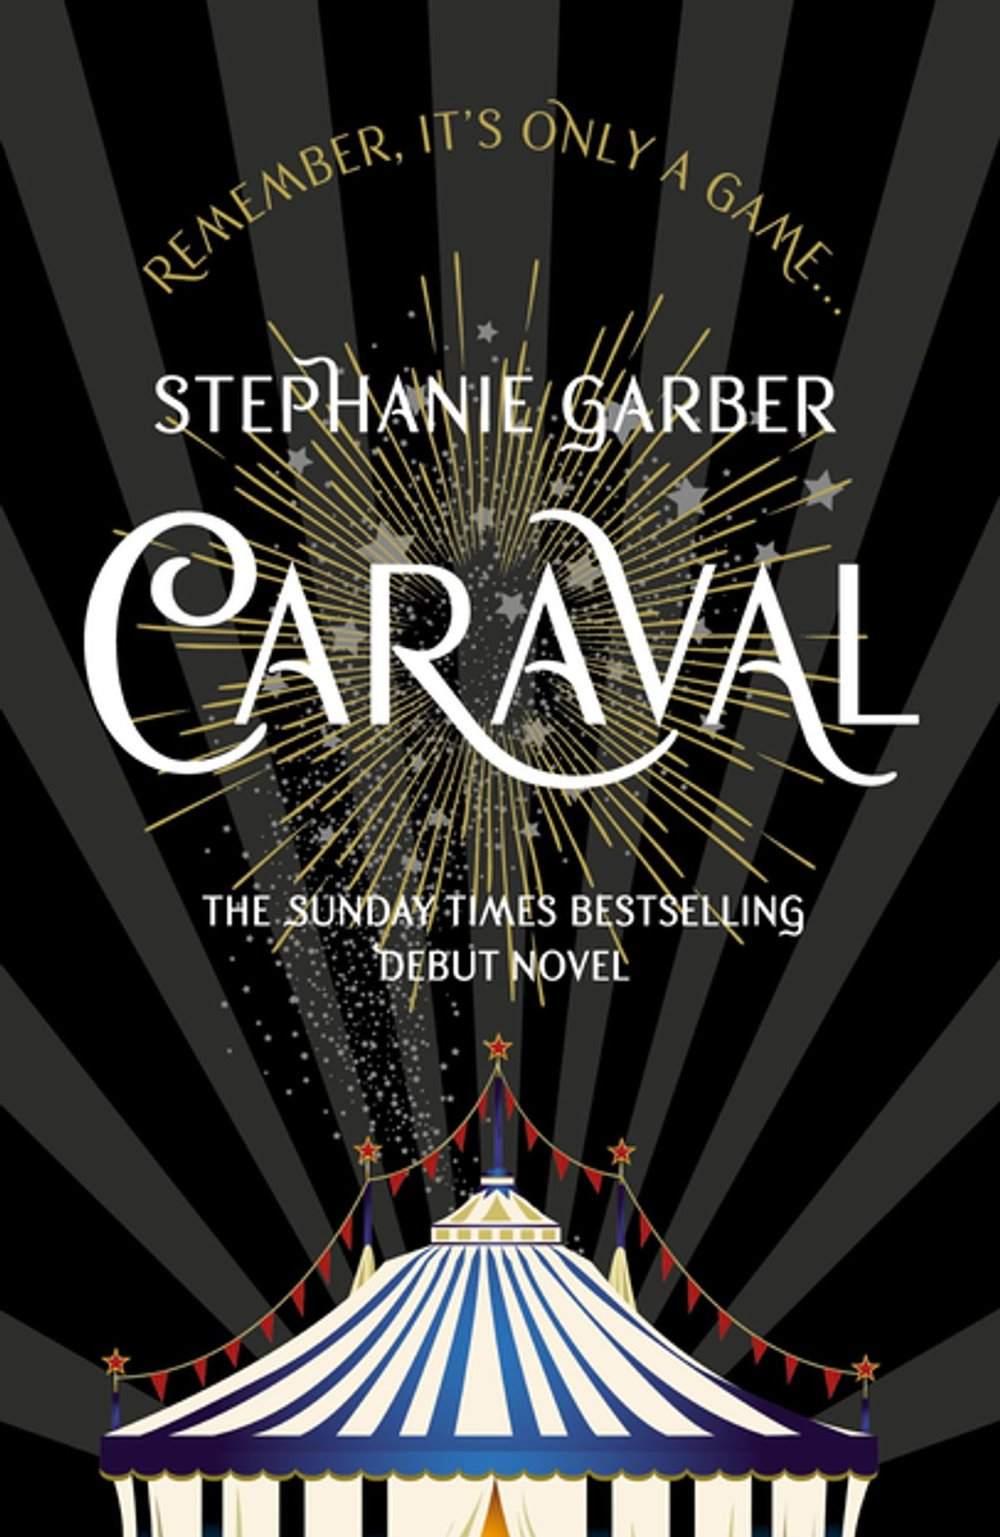 By Stephanie Garber - Scarlett has been told that everything that happens during Caraval is only an elaborate performance.*